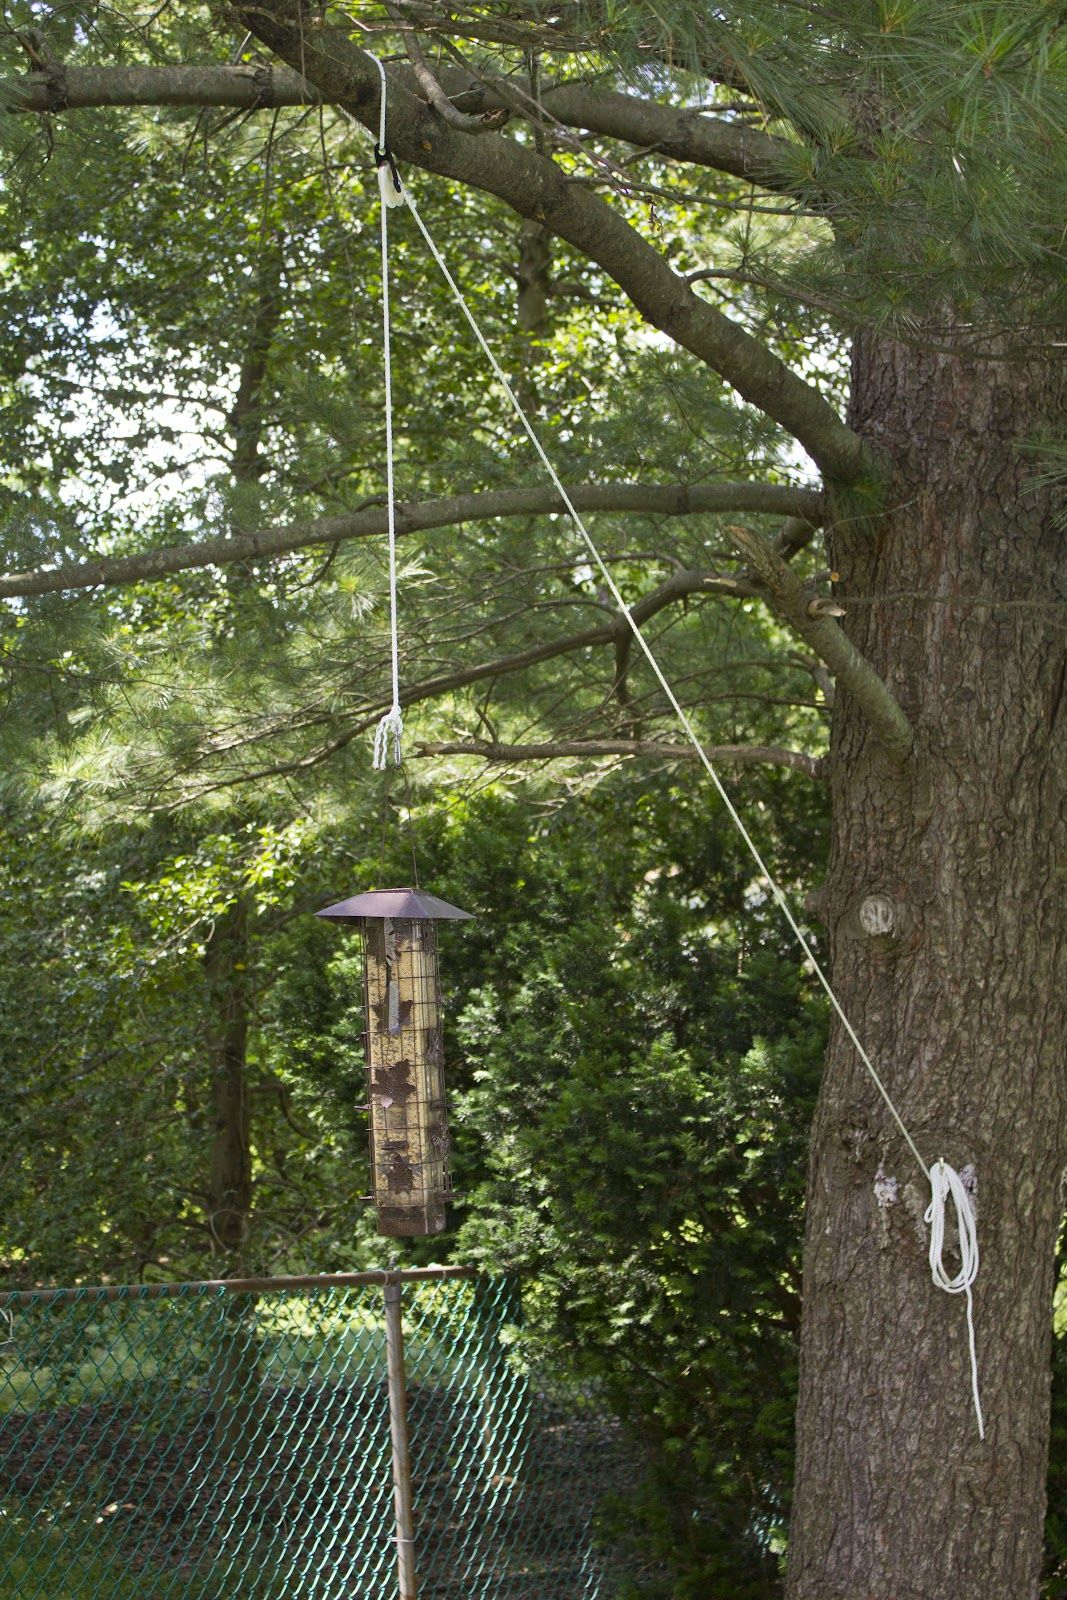 Bird Feeder Pulleys Pulley System I Rigged To Lower The